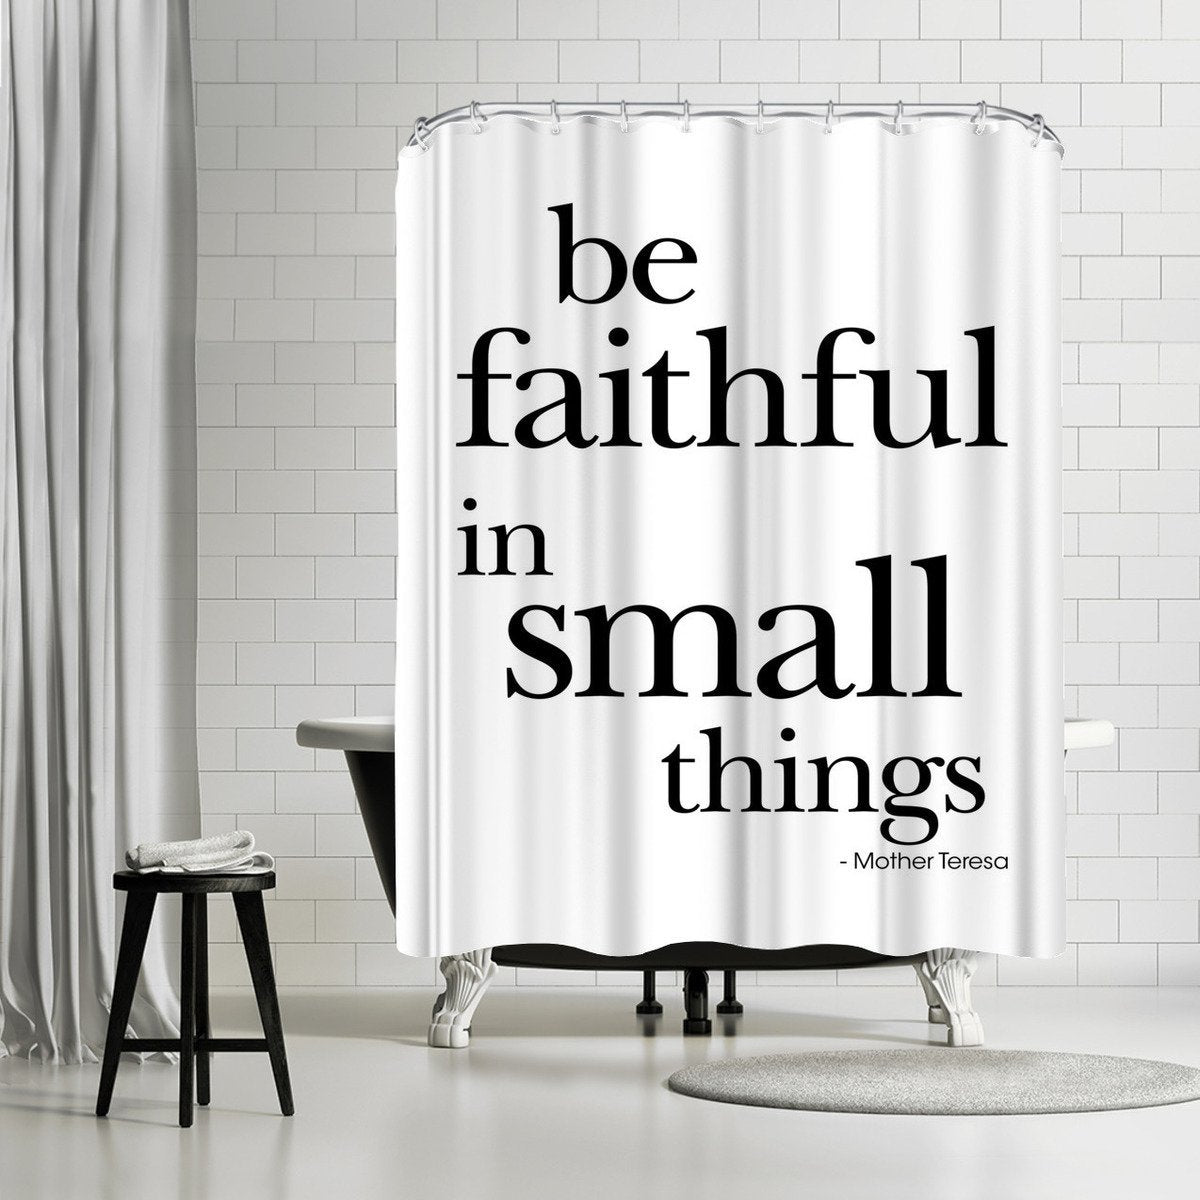 Be Faithful Small Things Mother Teresa Black by Amy Brinkman Shower Curtain - Shower Curtain - Americanflat